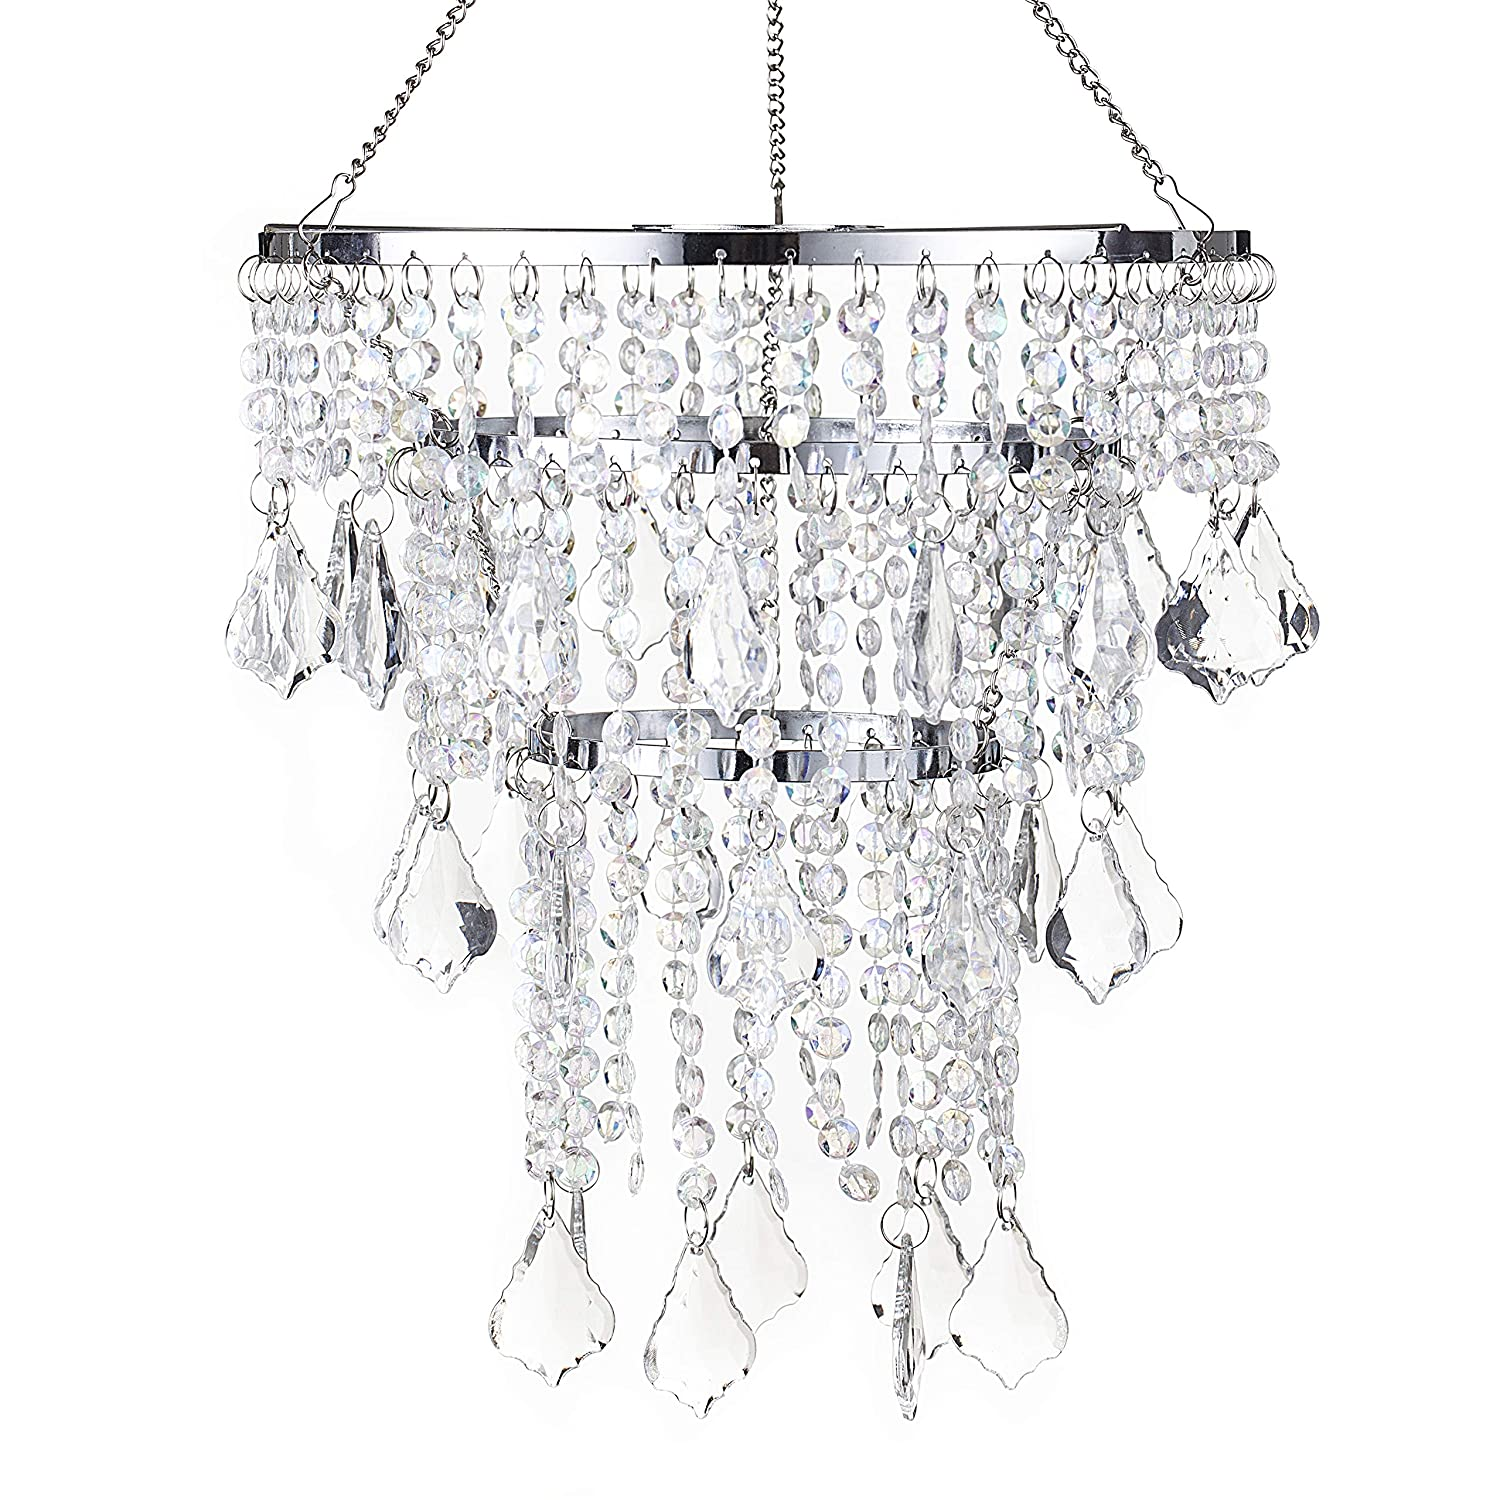 SUNLI HOUSE Modern Mini Acrylic Beaded Fixture Pendant Ceiling Chandelier Light for Wedding Bedroom Hallway Bathroom H11.4''XD8.6''